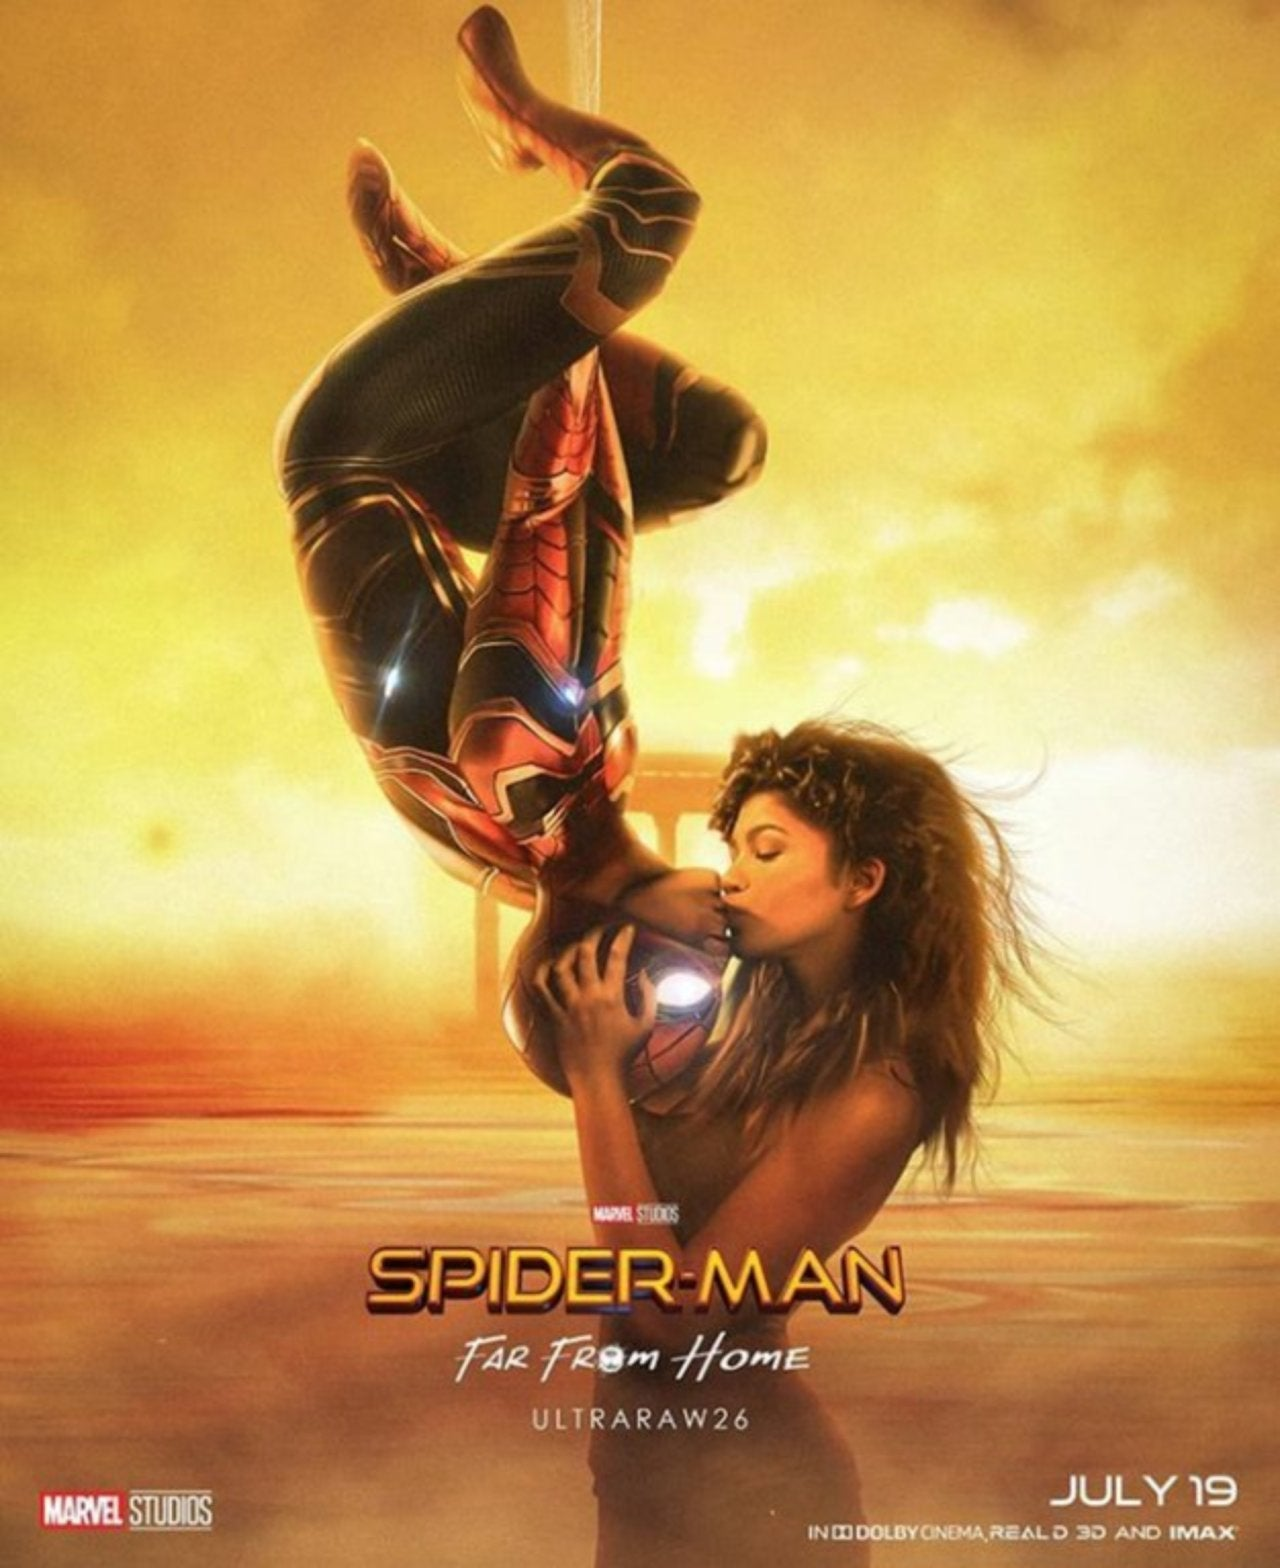 Spider Man Far From Home Fan Poster Pays Tribute To Original Film